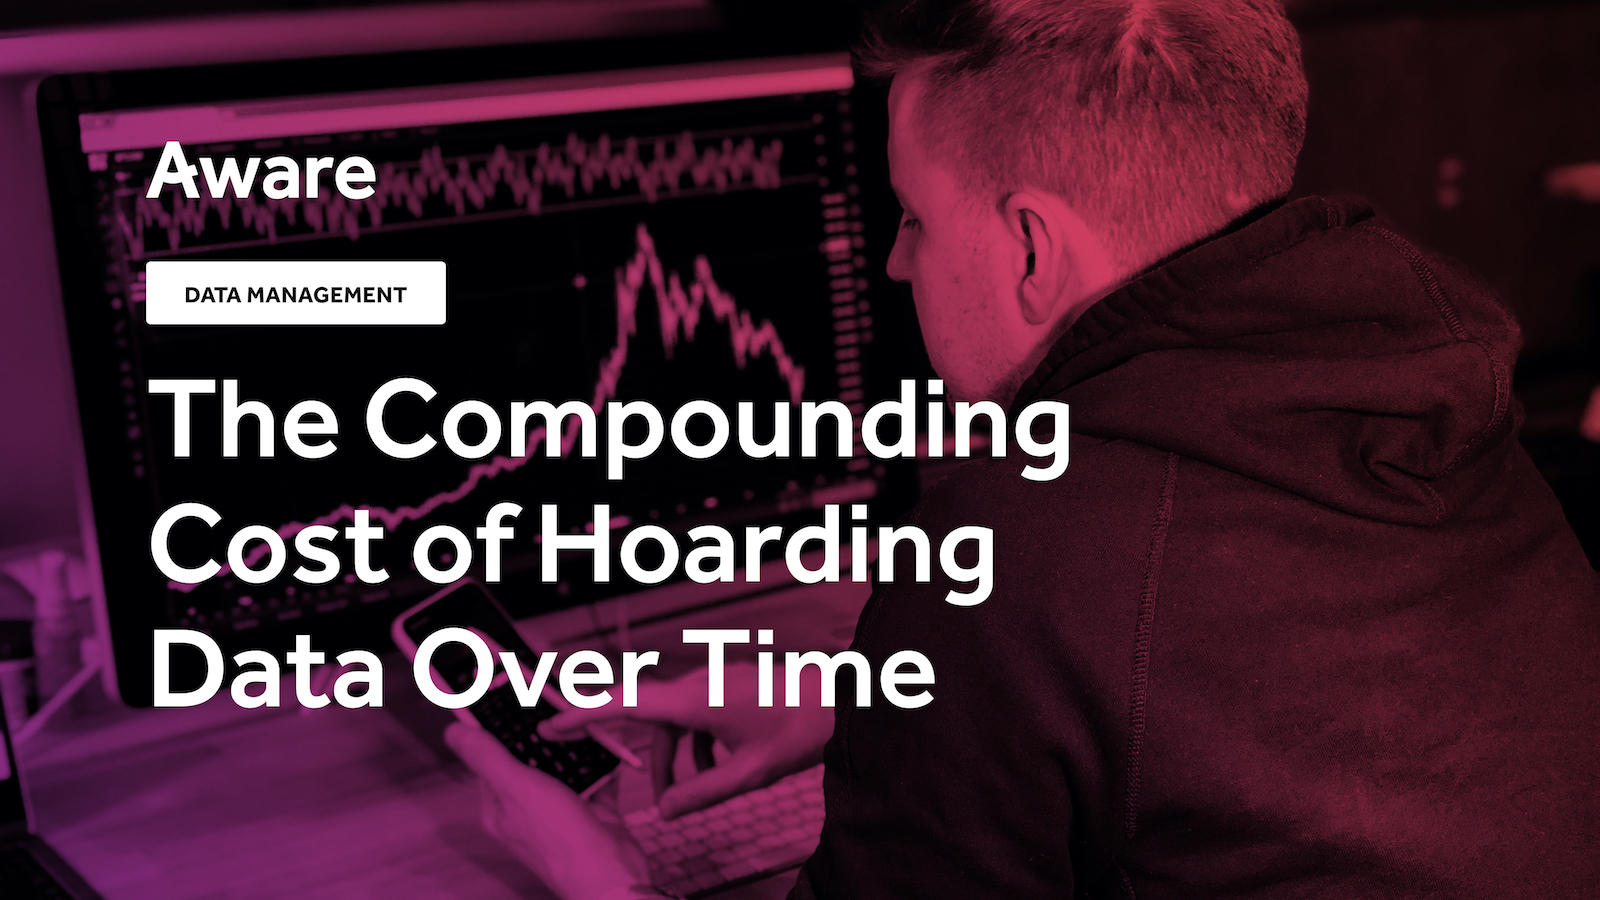 The Compounding Cost of Hoarding Data Over Time